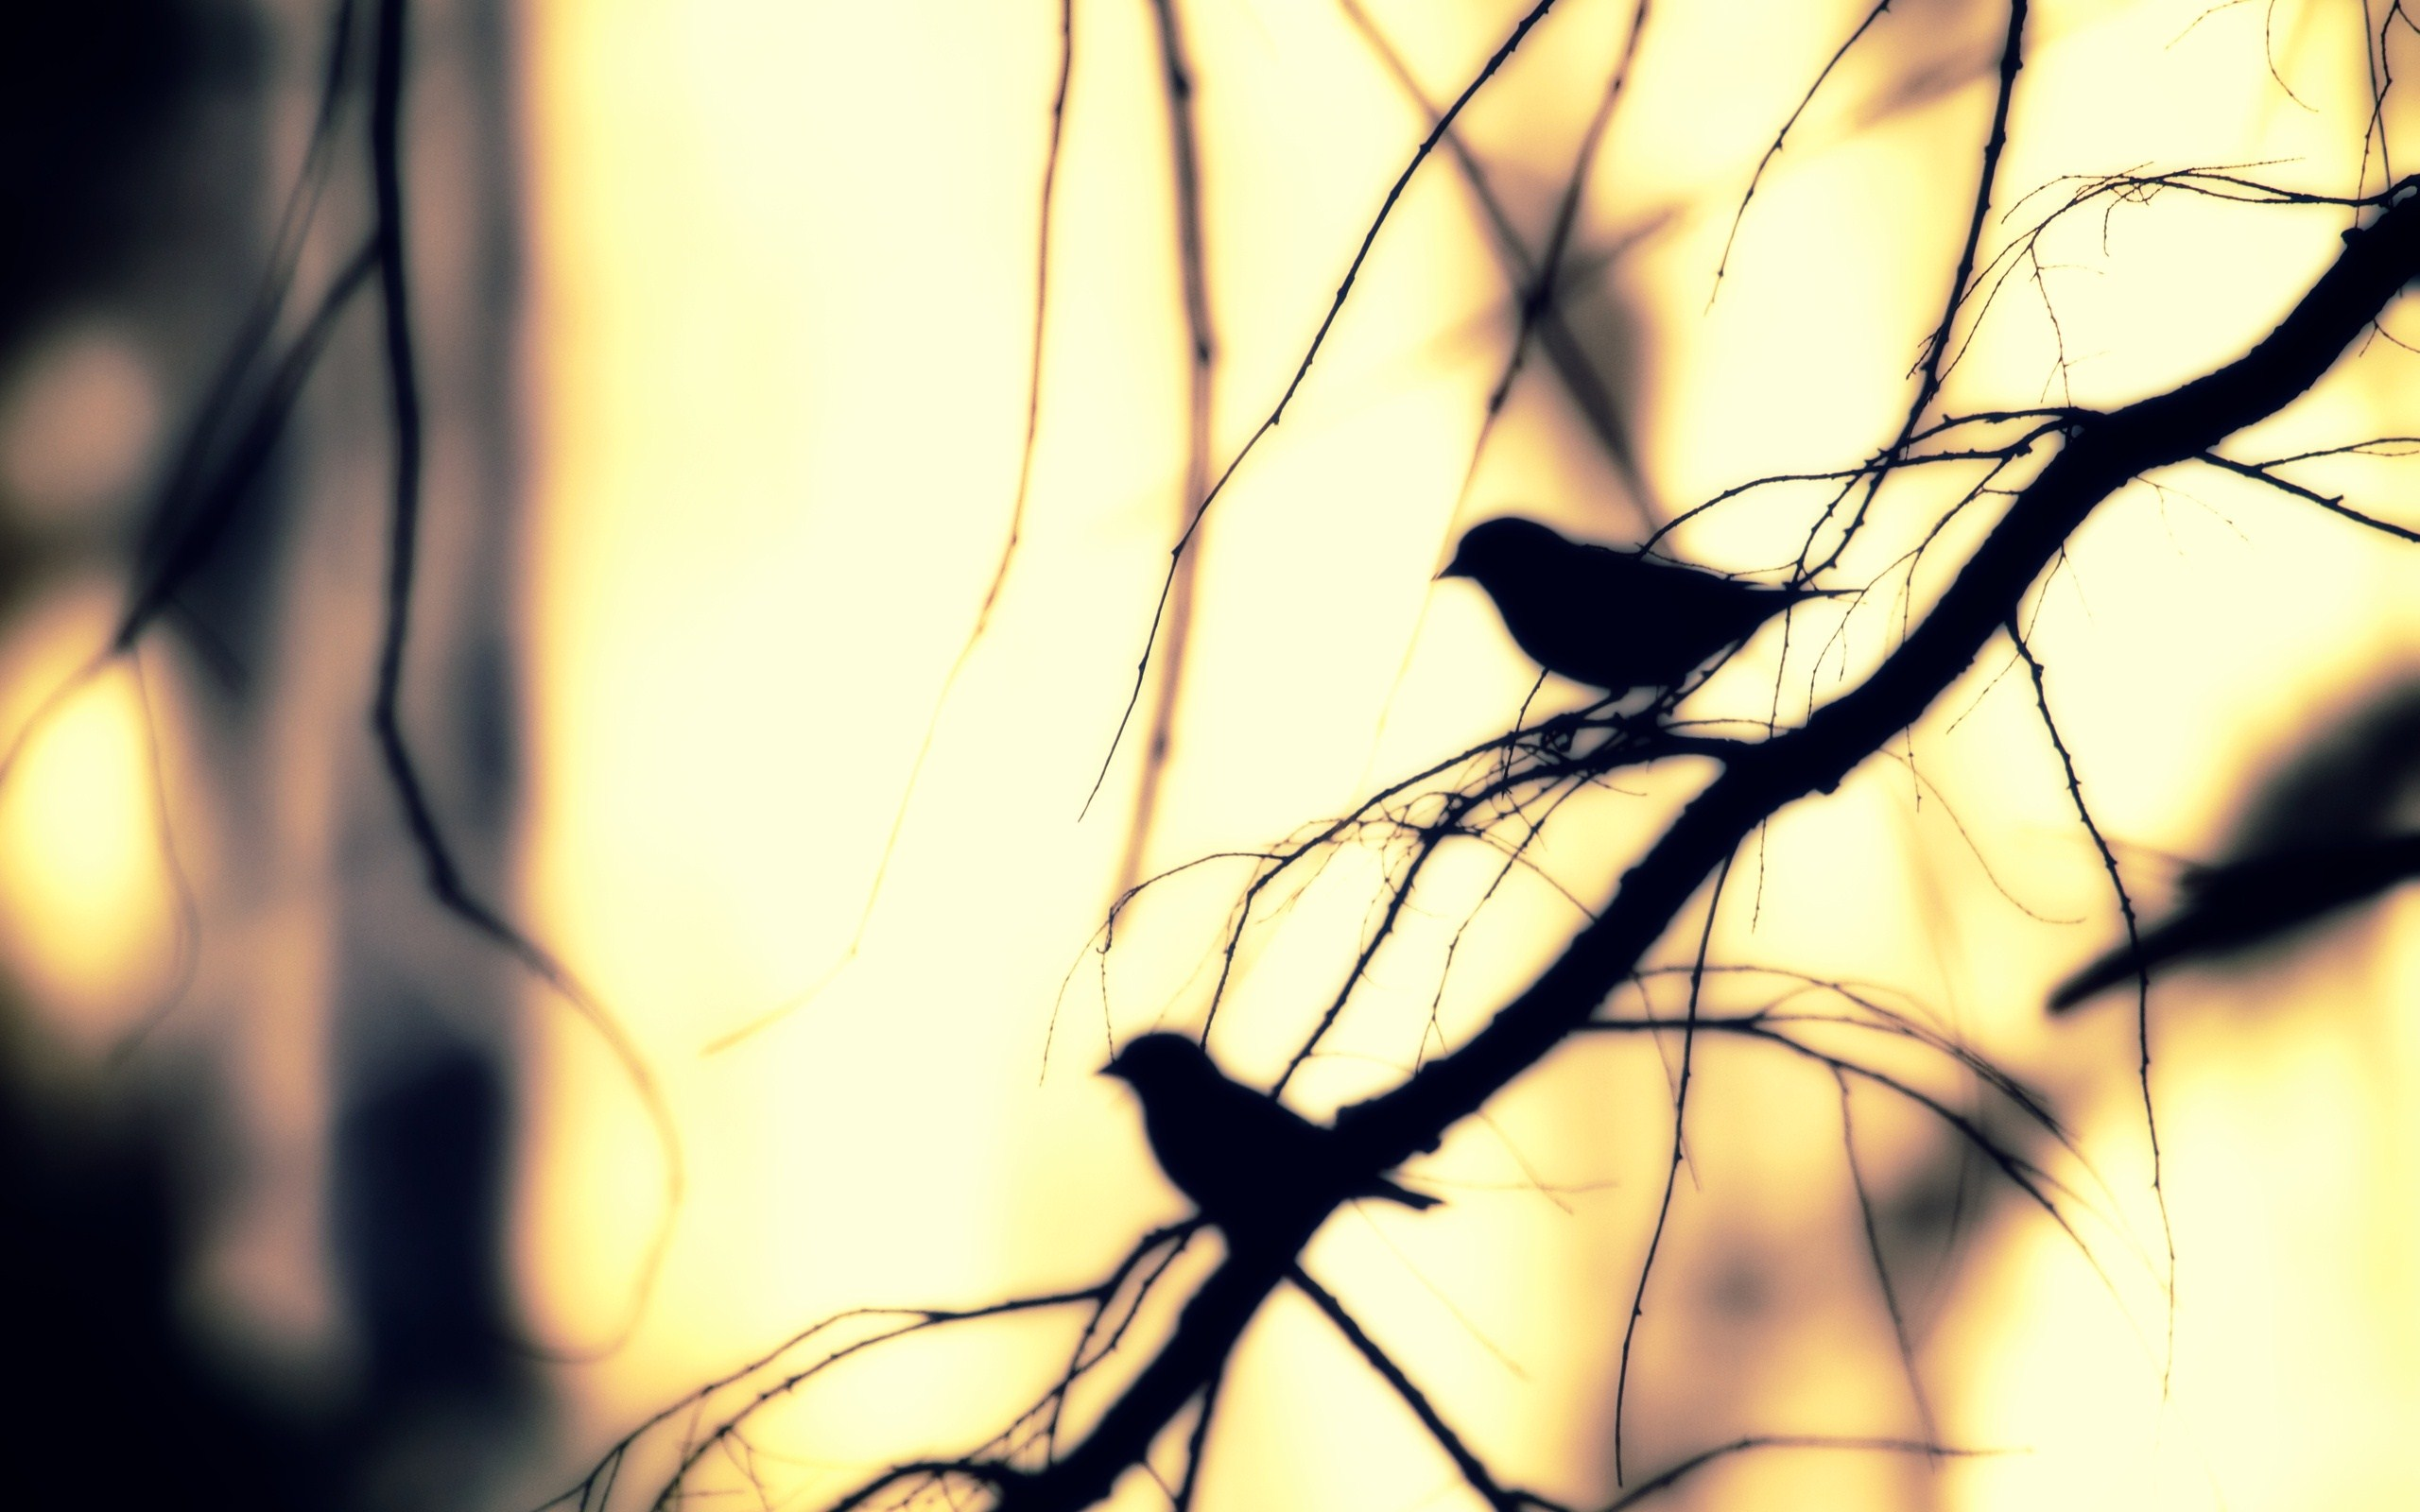 nature branch tree birds winter photo wallpaper 2560x1600 2560x1600